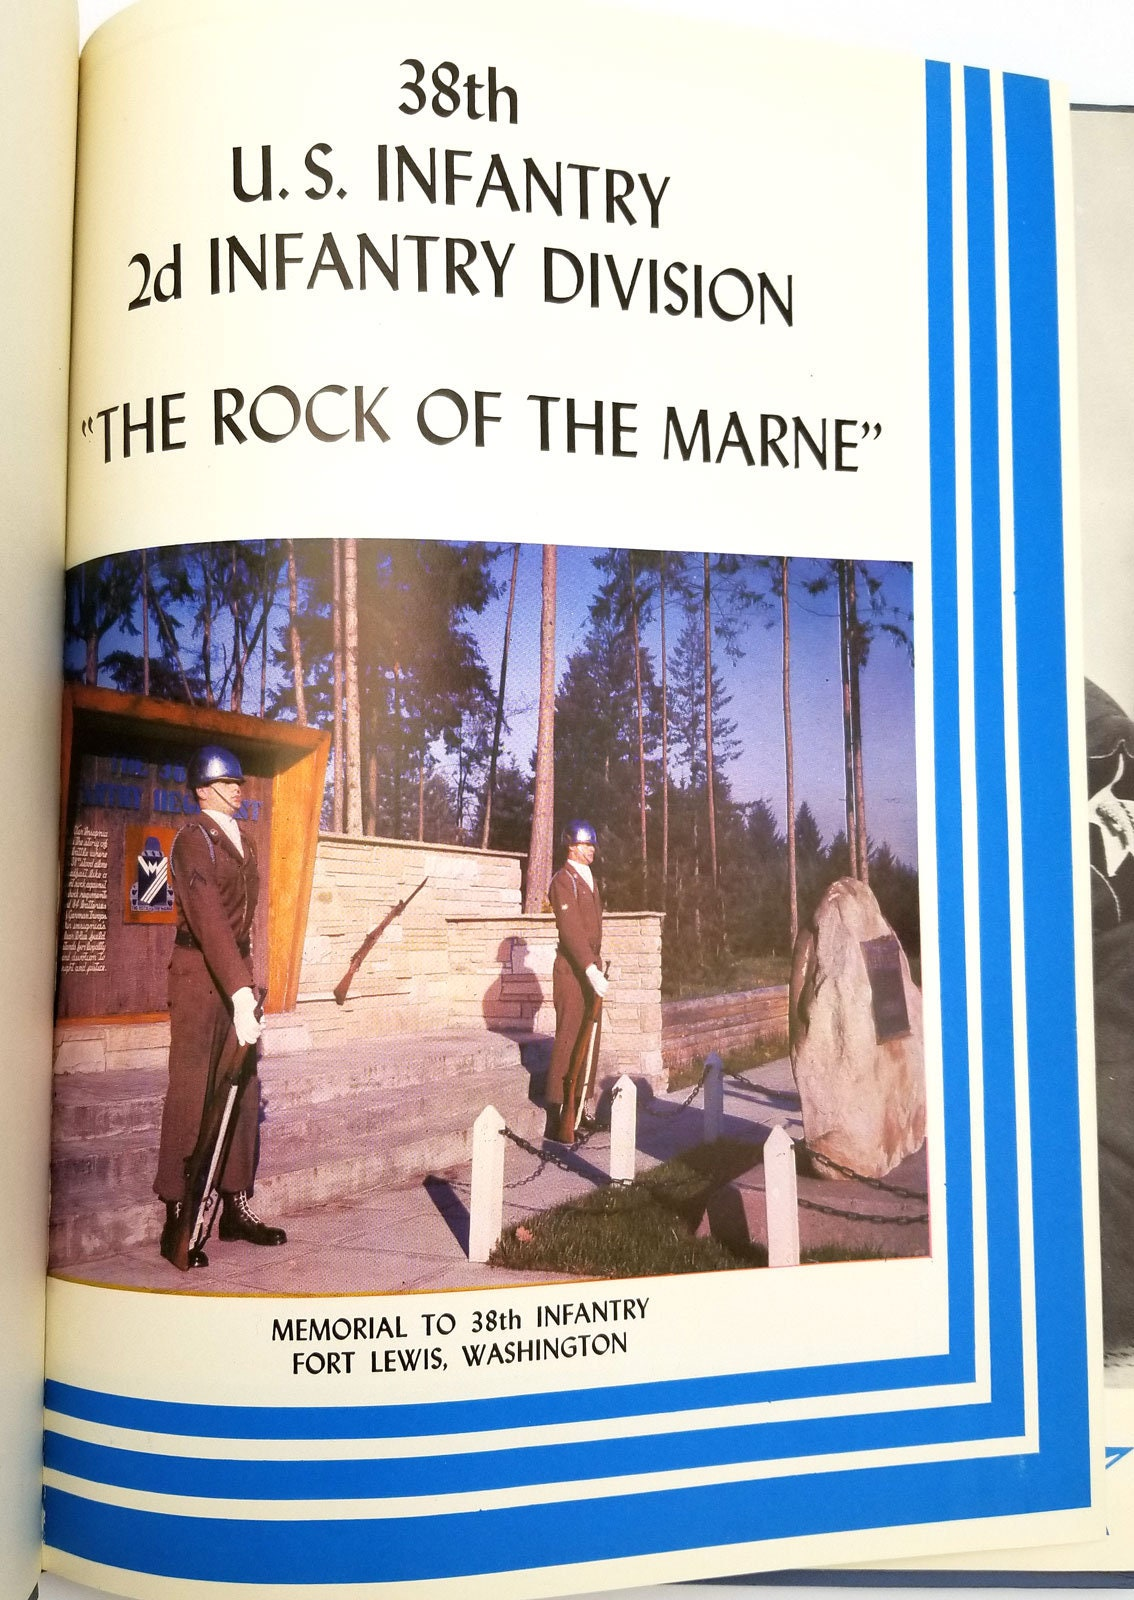 38th Infantry Regiment 2d Infantry Division The Rock of the Marne